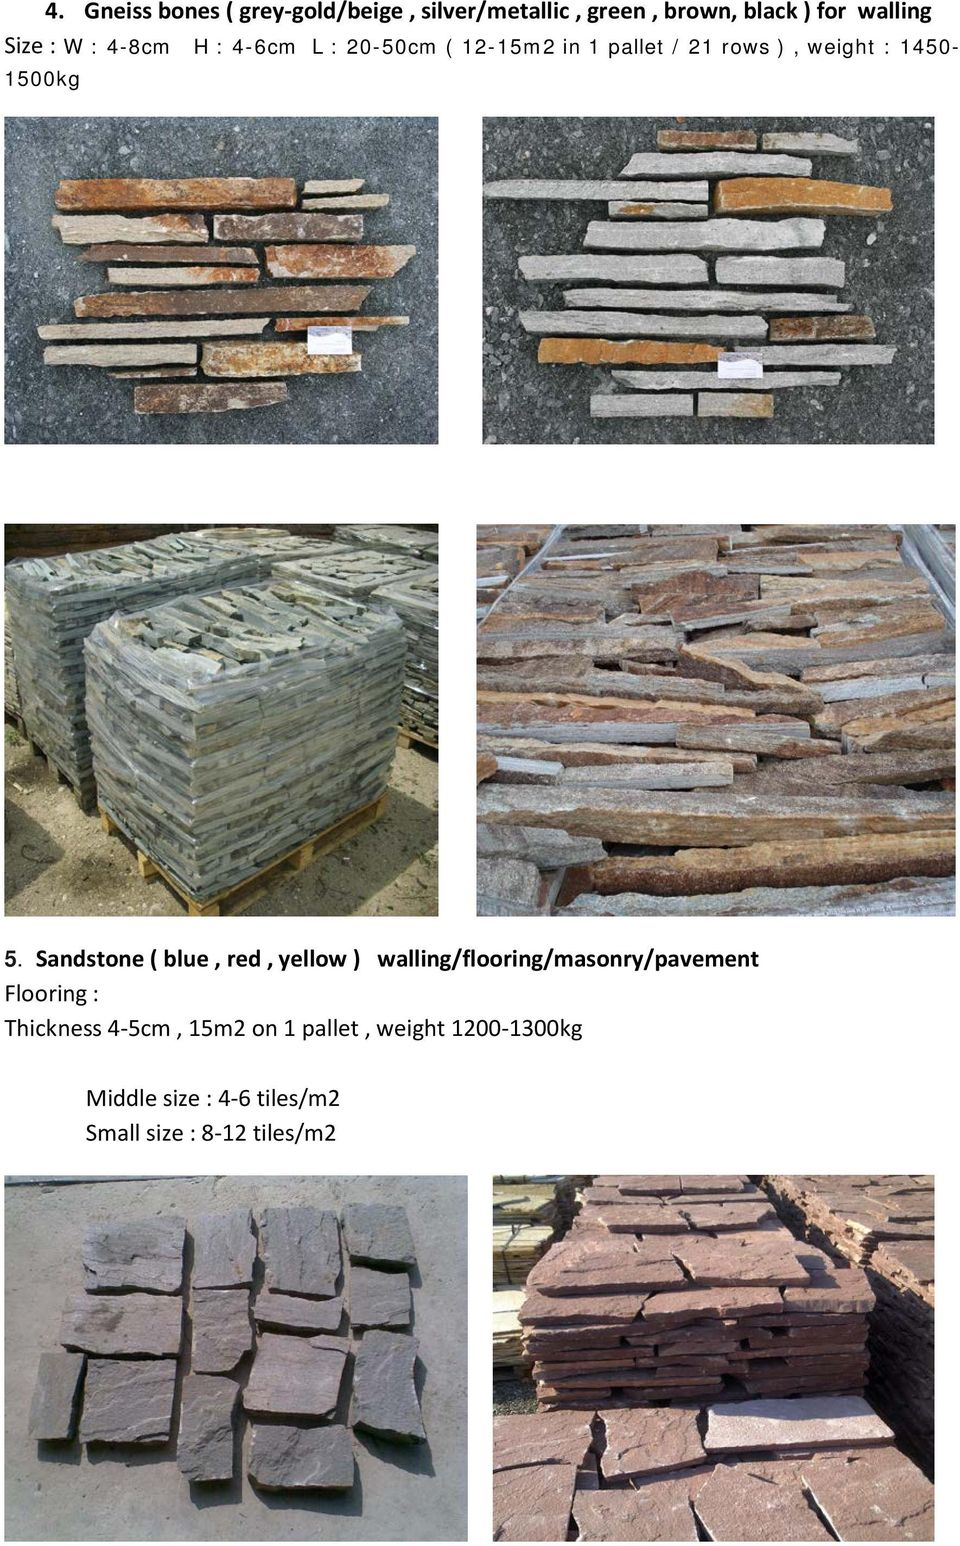 Sandstone ( blue, red, yellow ) walling/flooring/masonry/pavement Flooring : Thickness